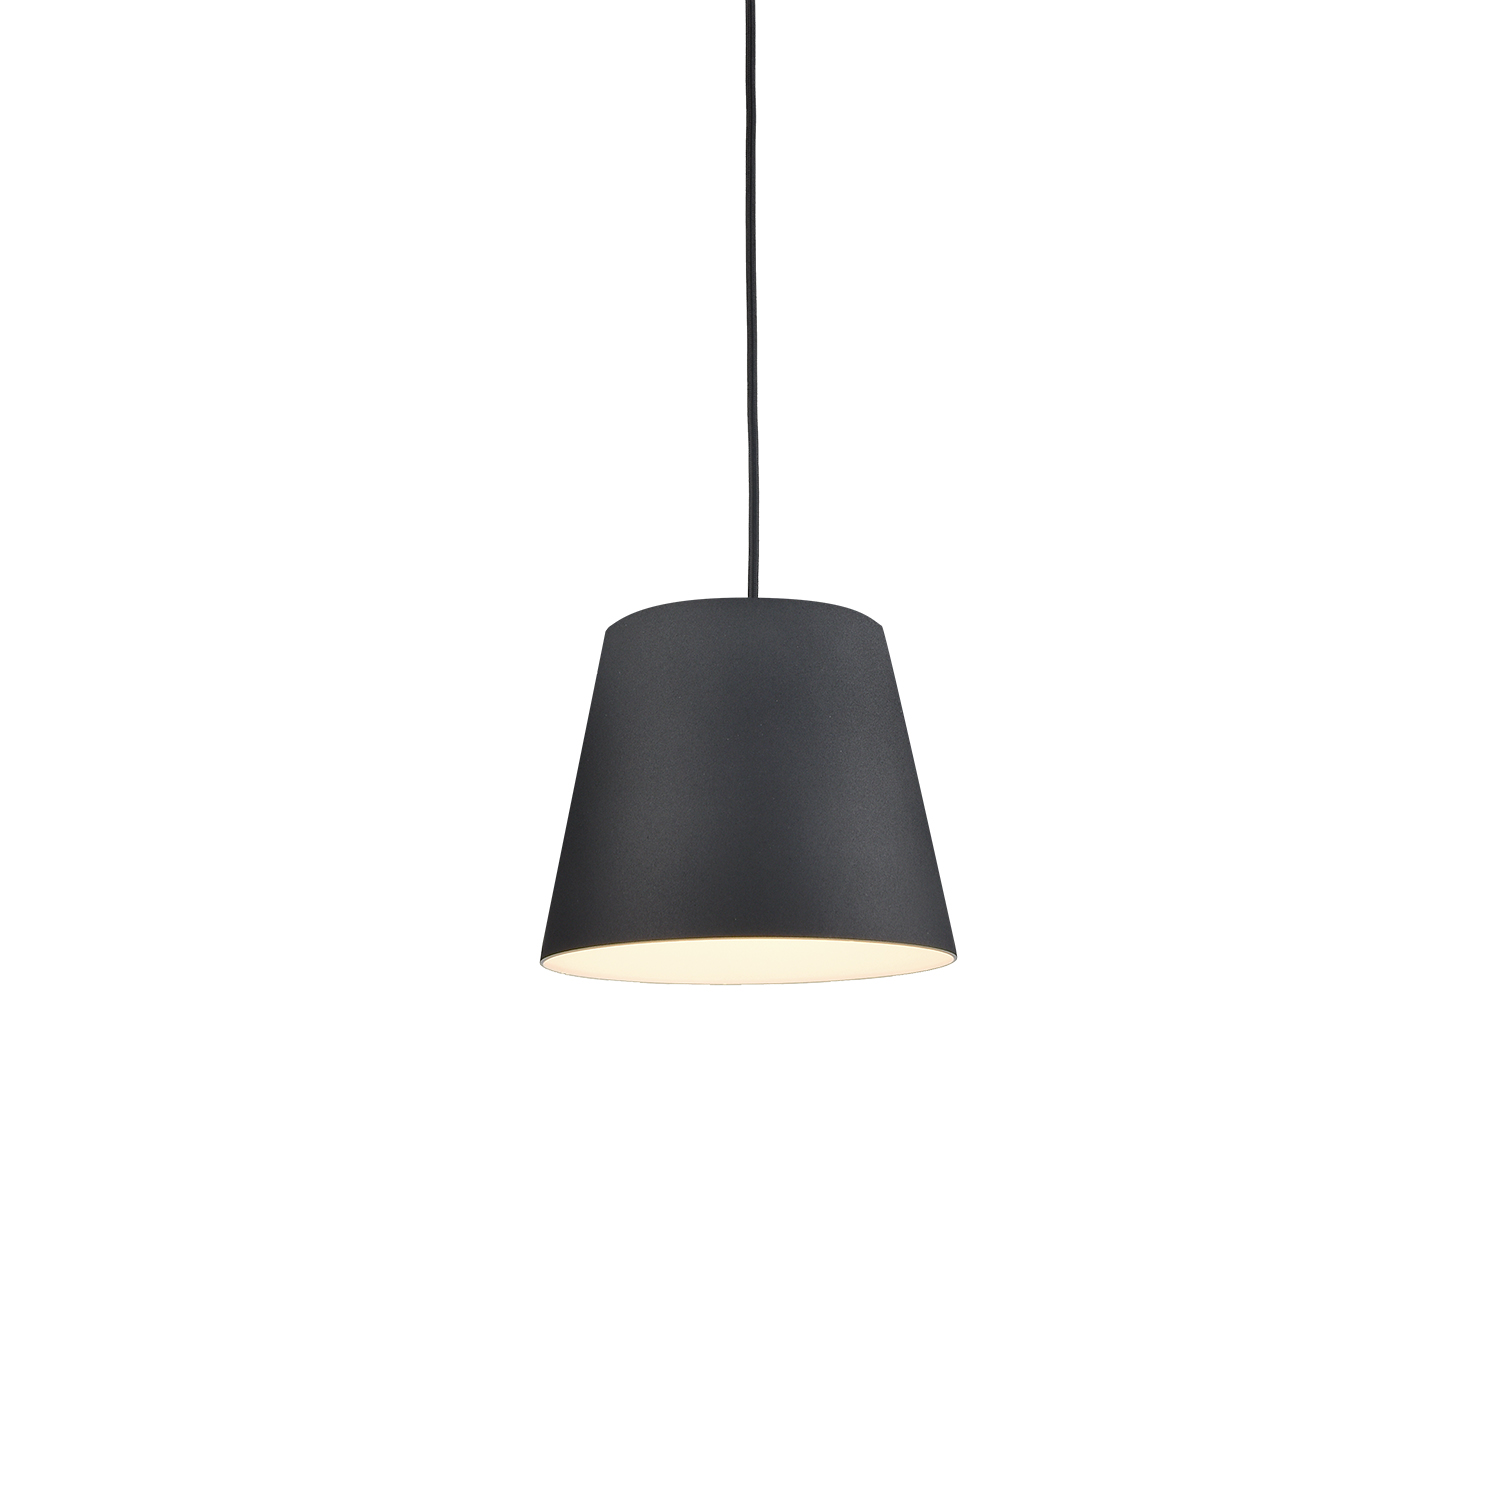 Pendant Lighting GUILDFORD 493624-BK